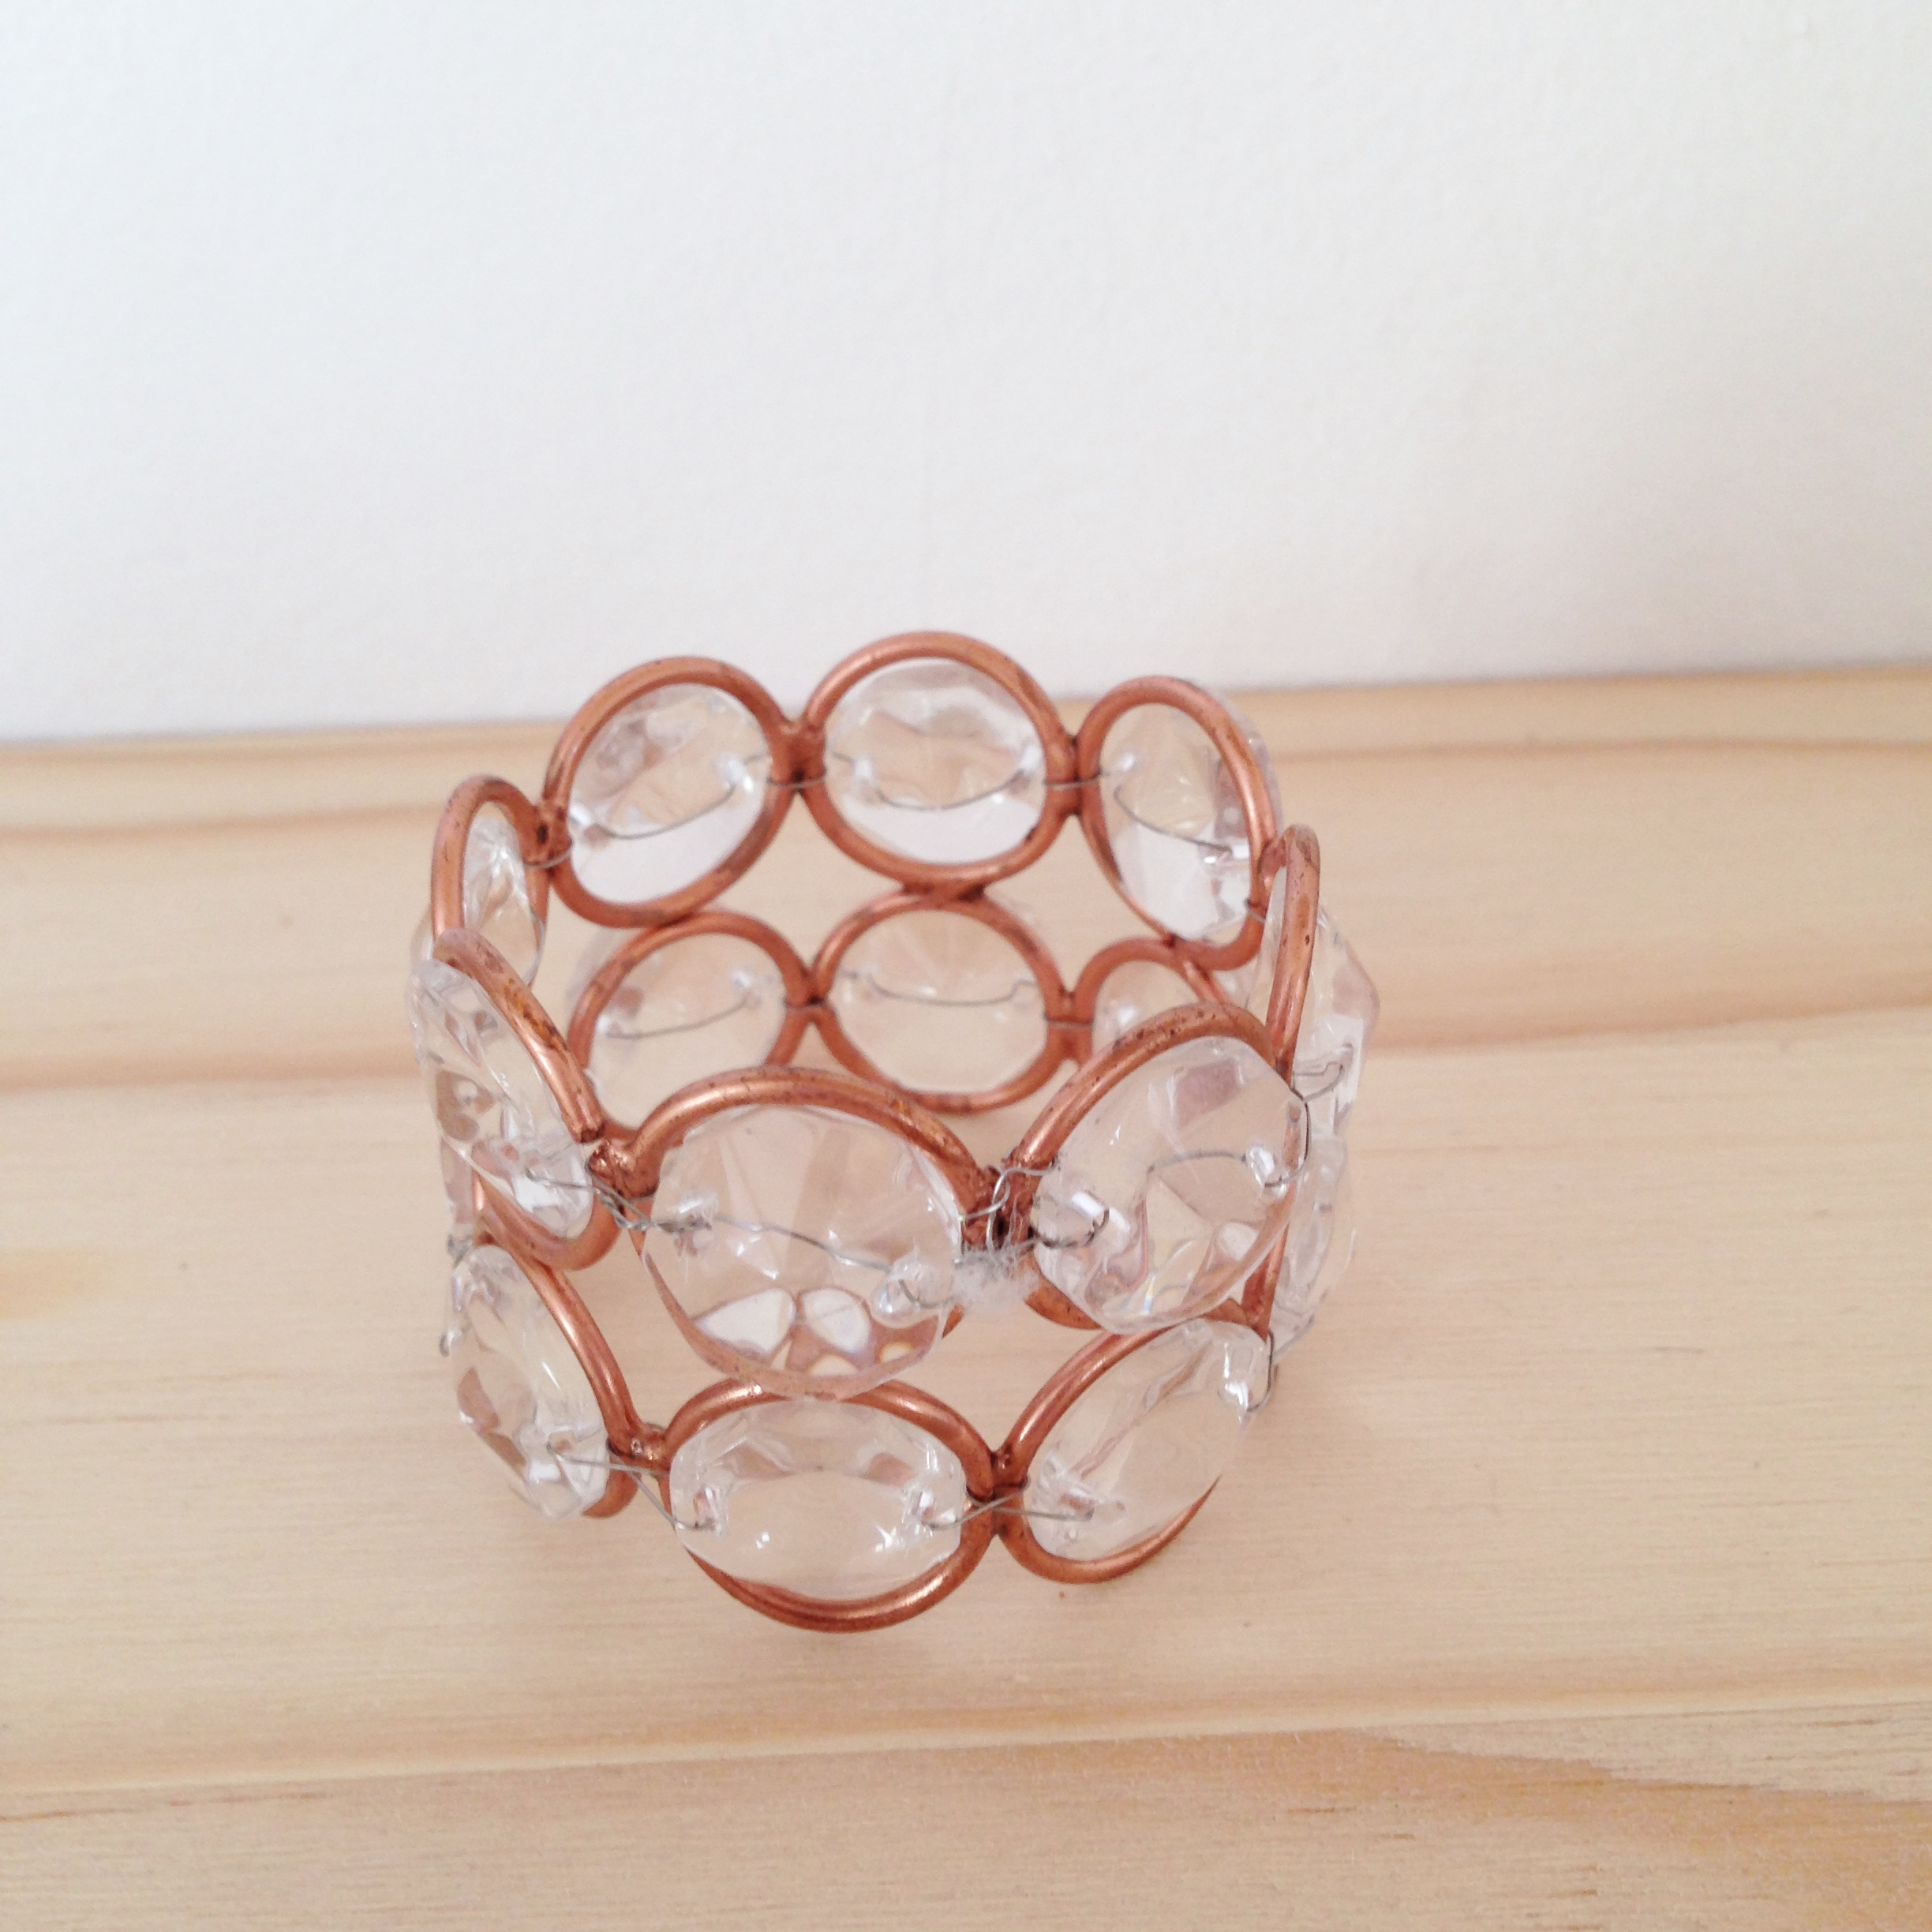 Rose Gold Bead Napkin Ring Desire2hire